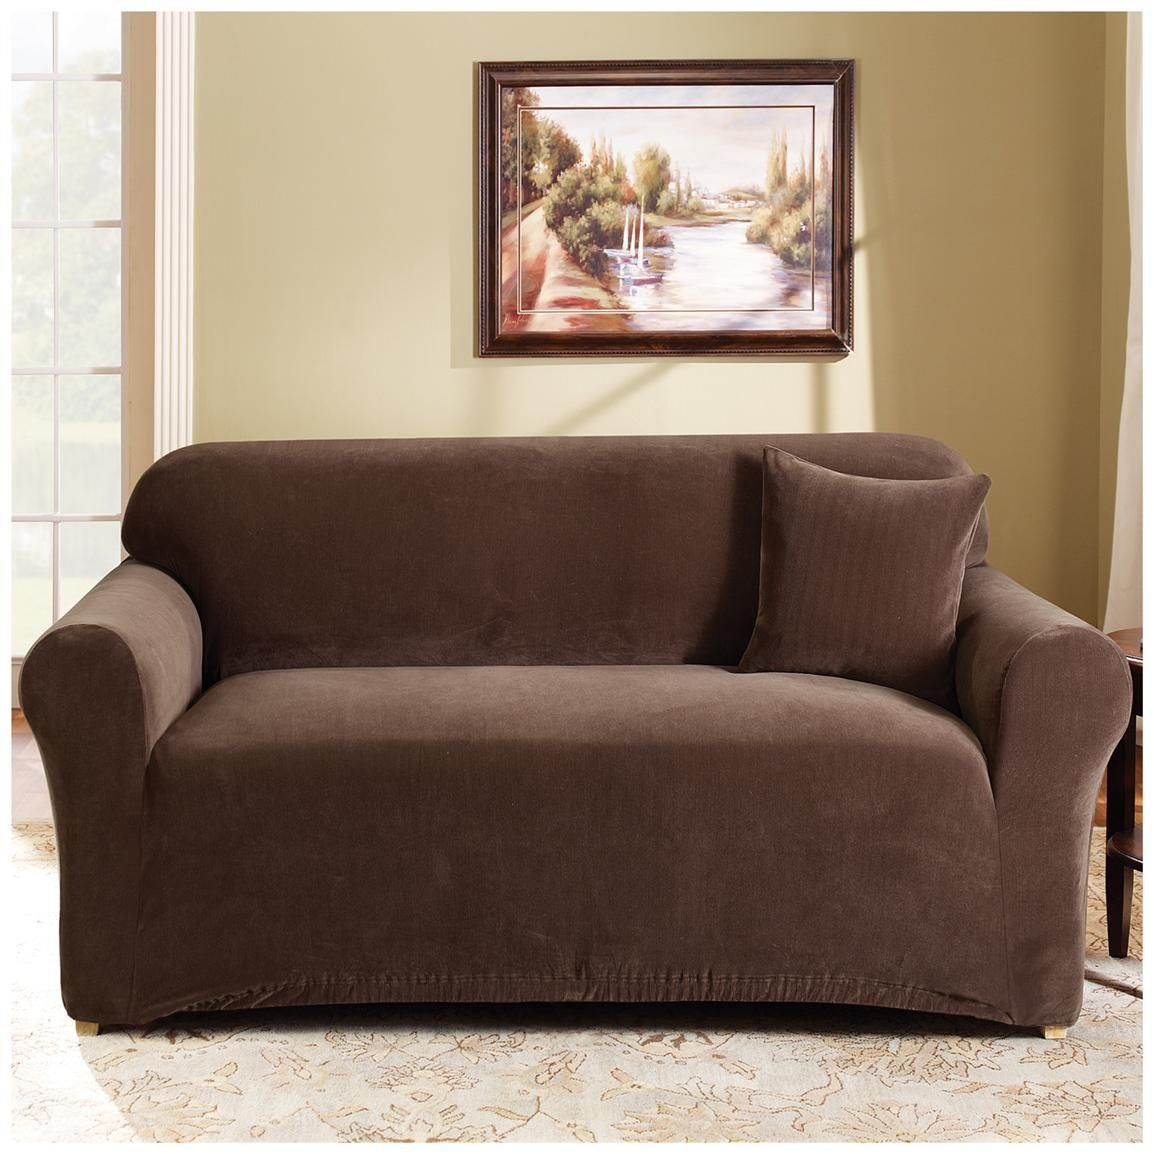 of plastic sure sofa custom fitted stretch size slipcovers large images slipcover concept made fit covers astounding